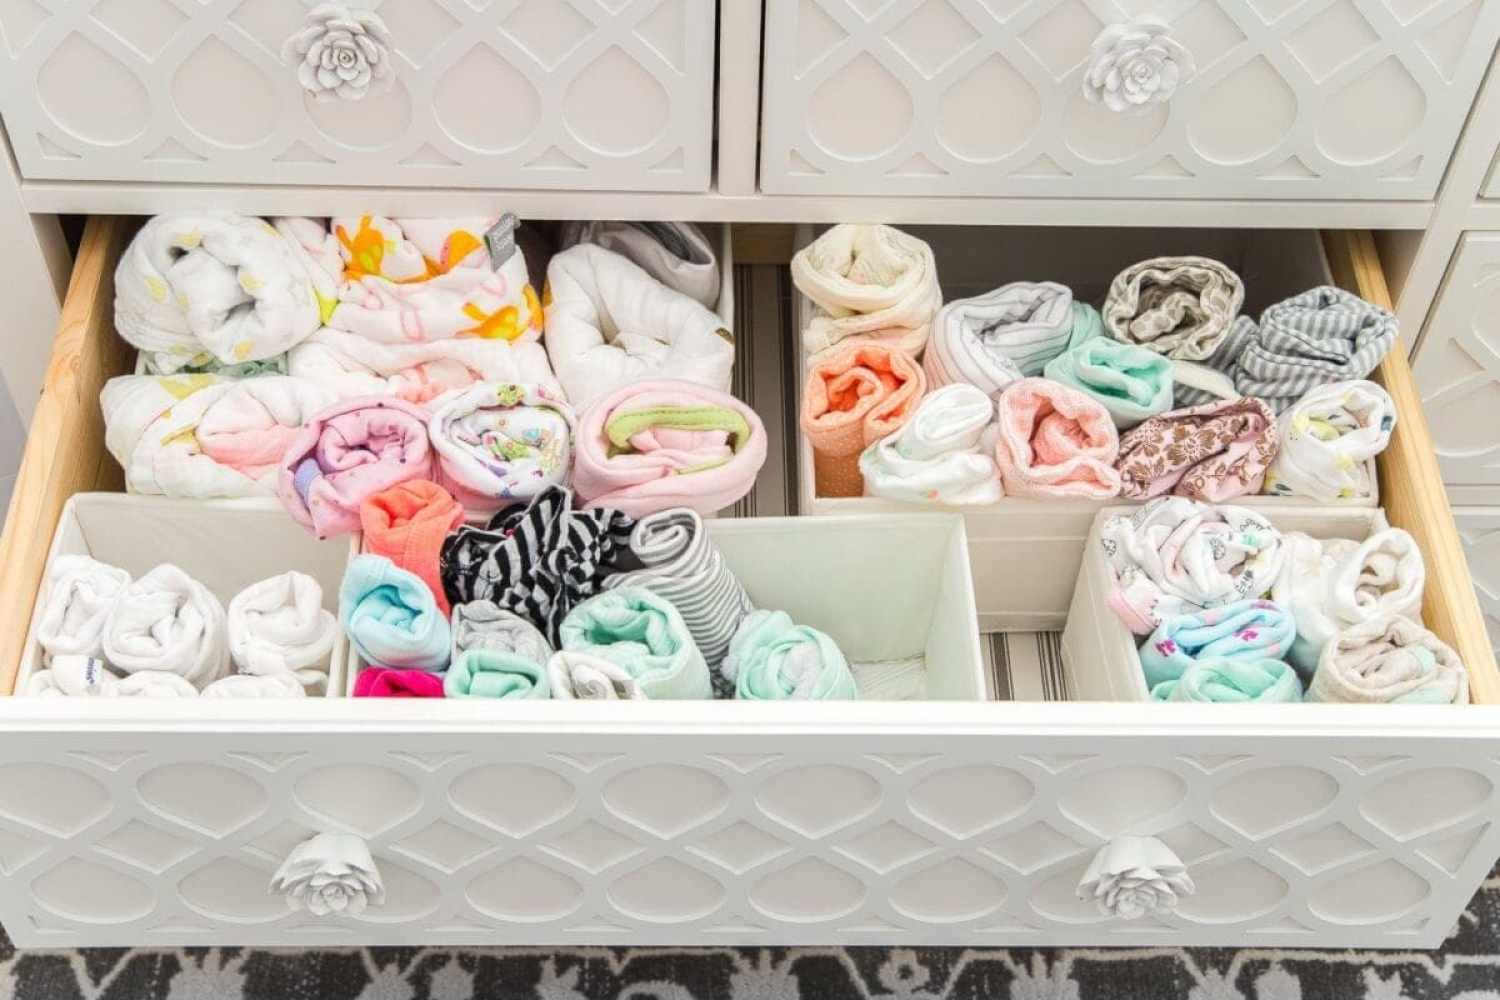 Nursery Organization | Dresser drawers with dividers to store baby clothes and swaddles in categories